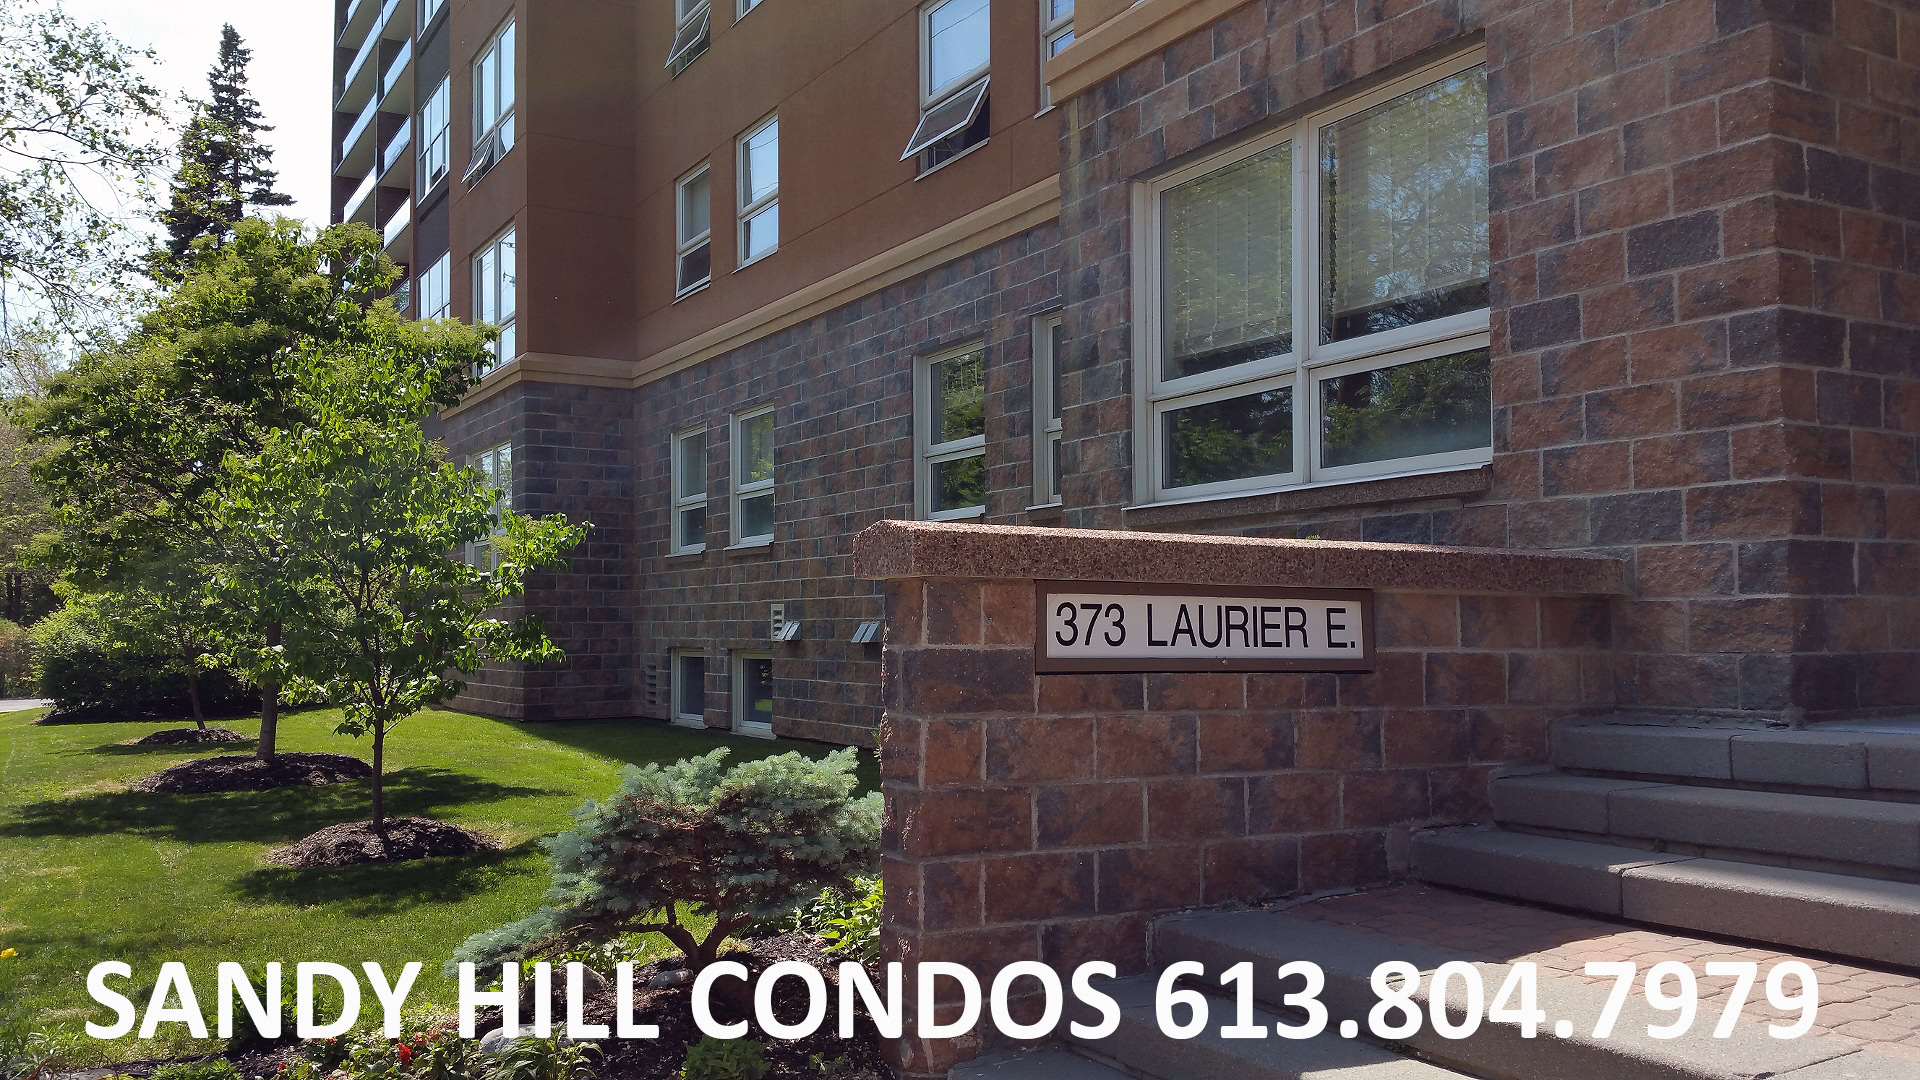 Superb Ottawa Condos For Sale Sandy Hill 373 Laurier Avenue East Beutiful Home Inspiration Truamahrainfo